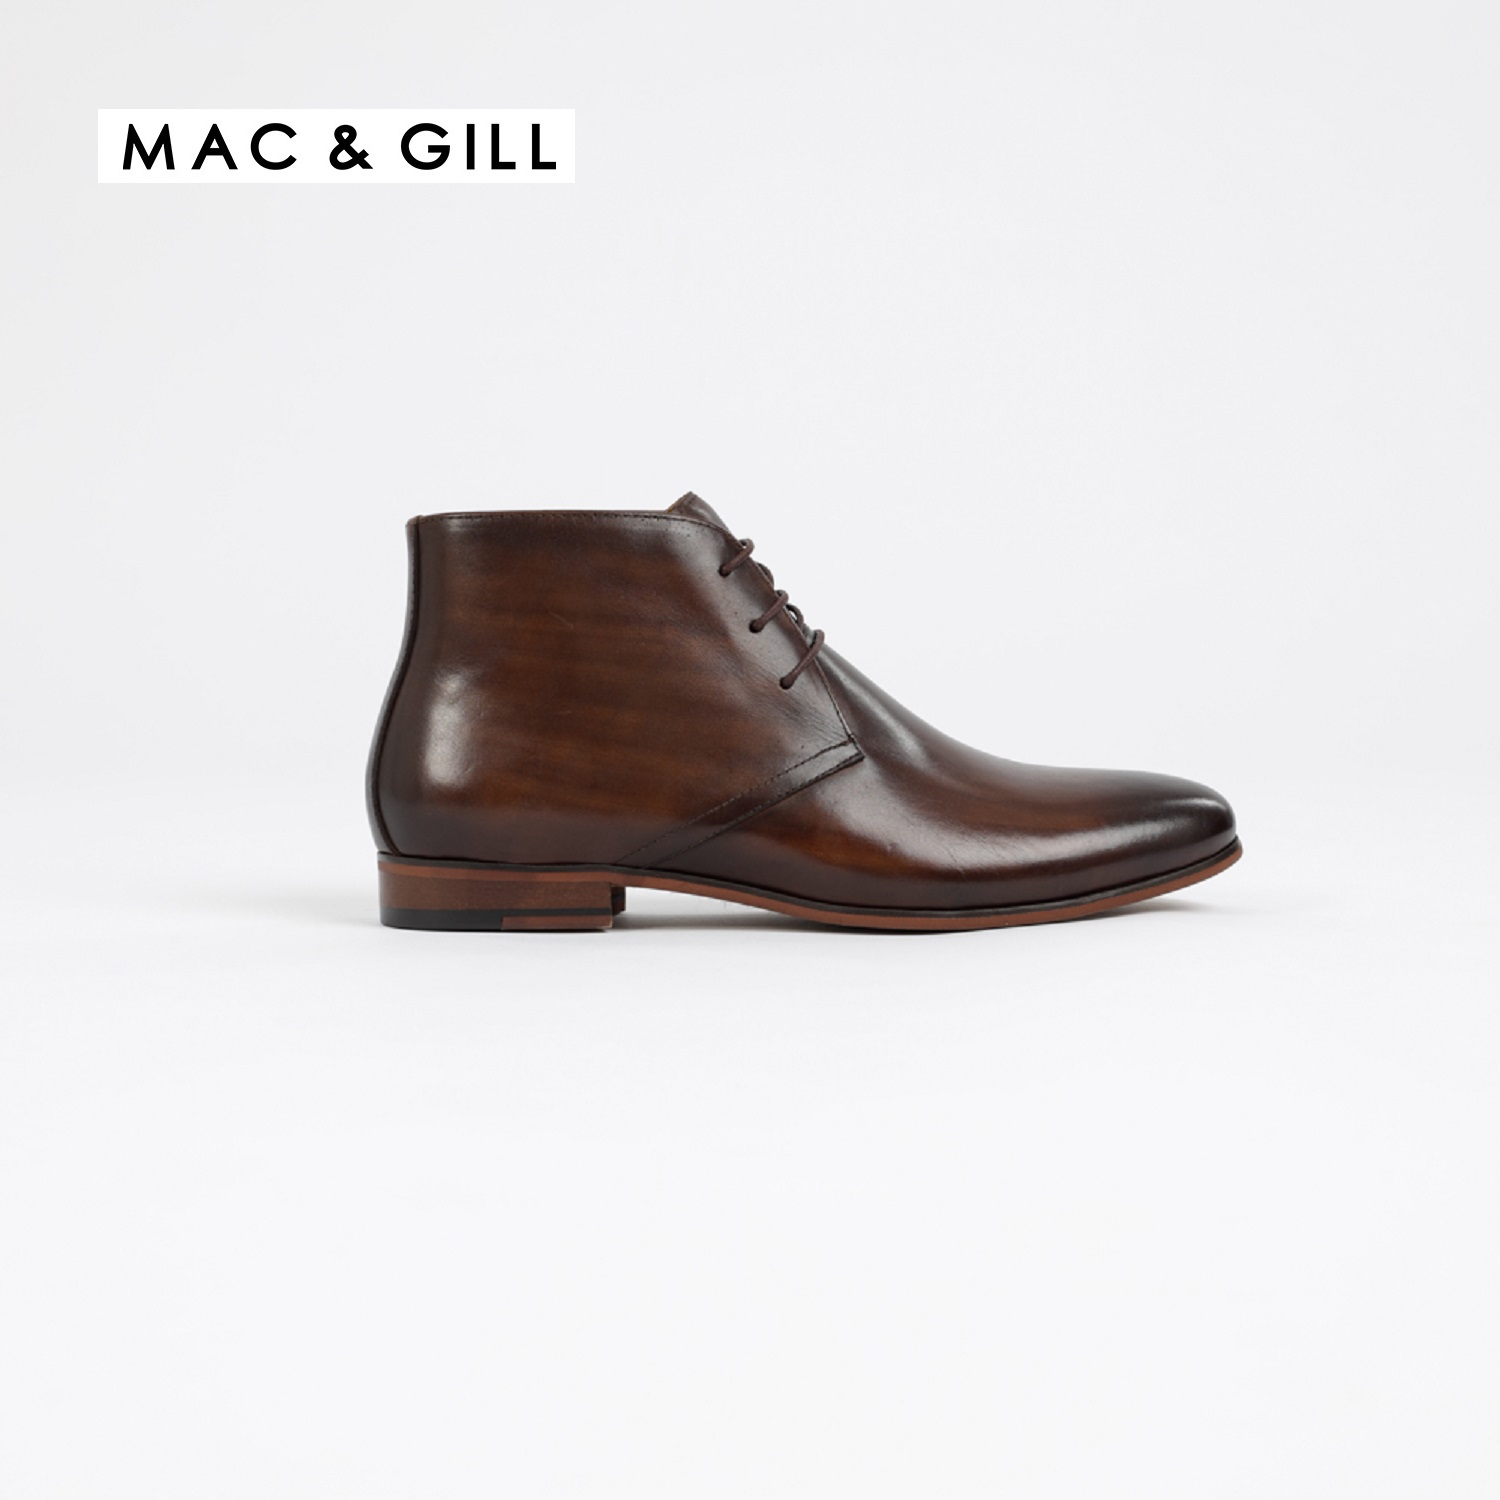 CHUKKA LEATHER BOOT LACED UP IN BROWN FORMAL AND CASUAL